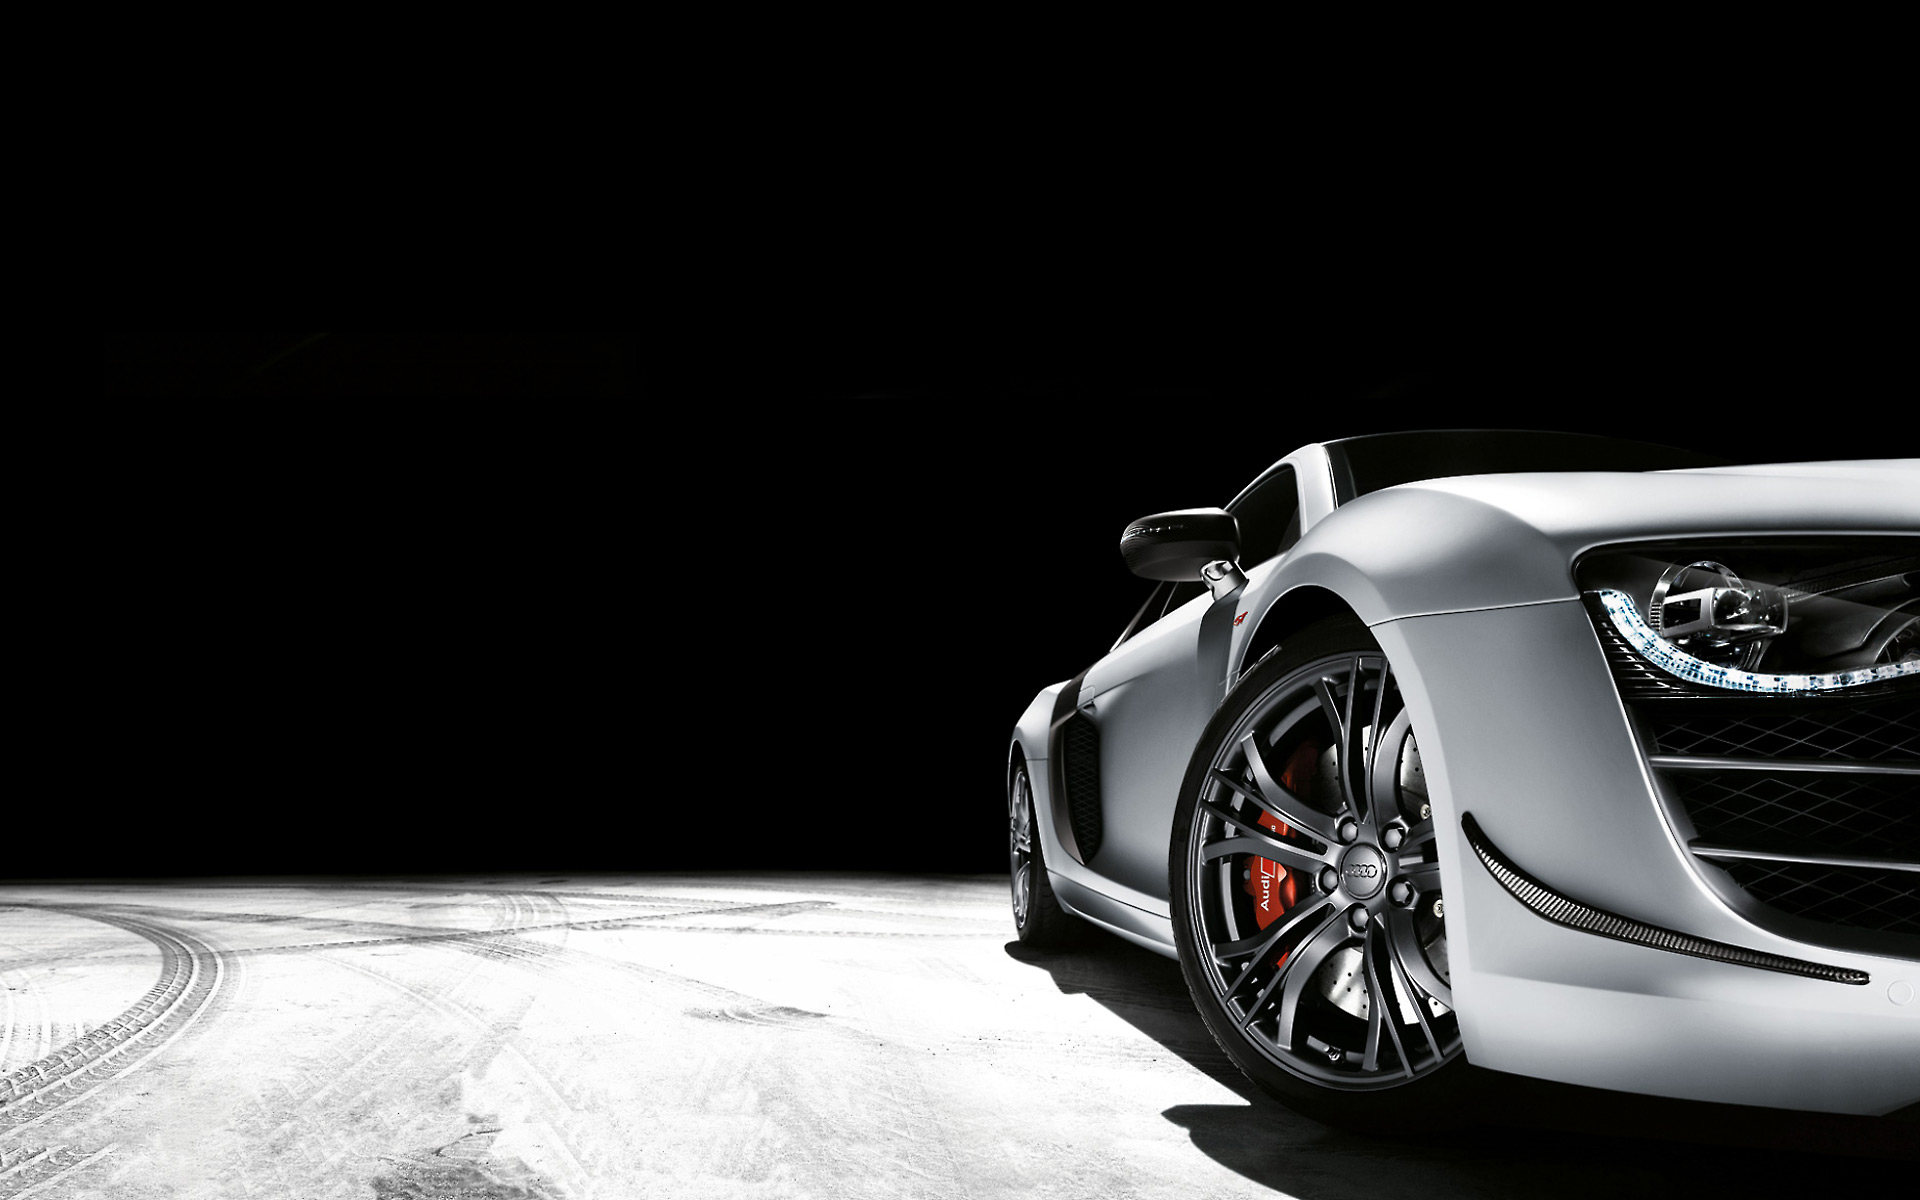 50 Super Sports Car Wallpapers That Ll Blow Your Desktop Away